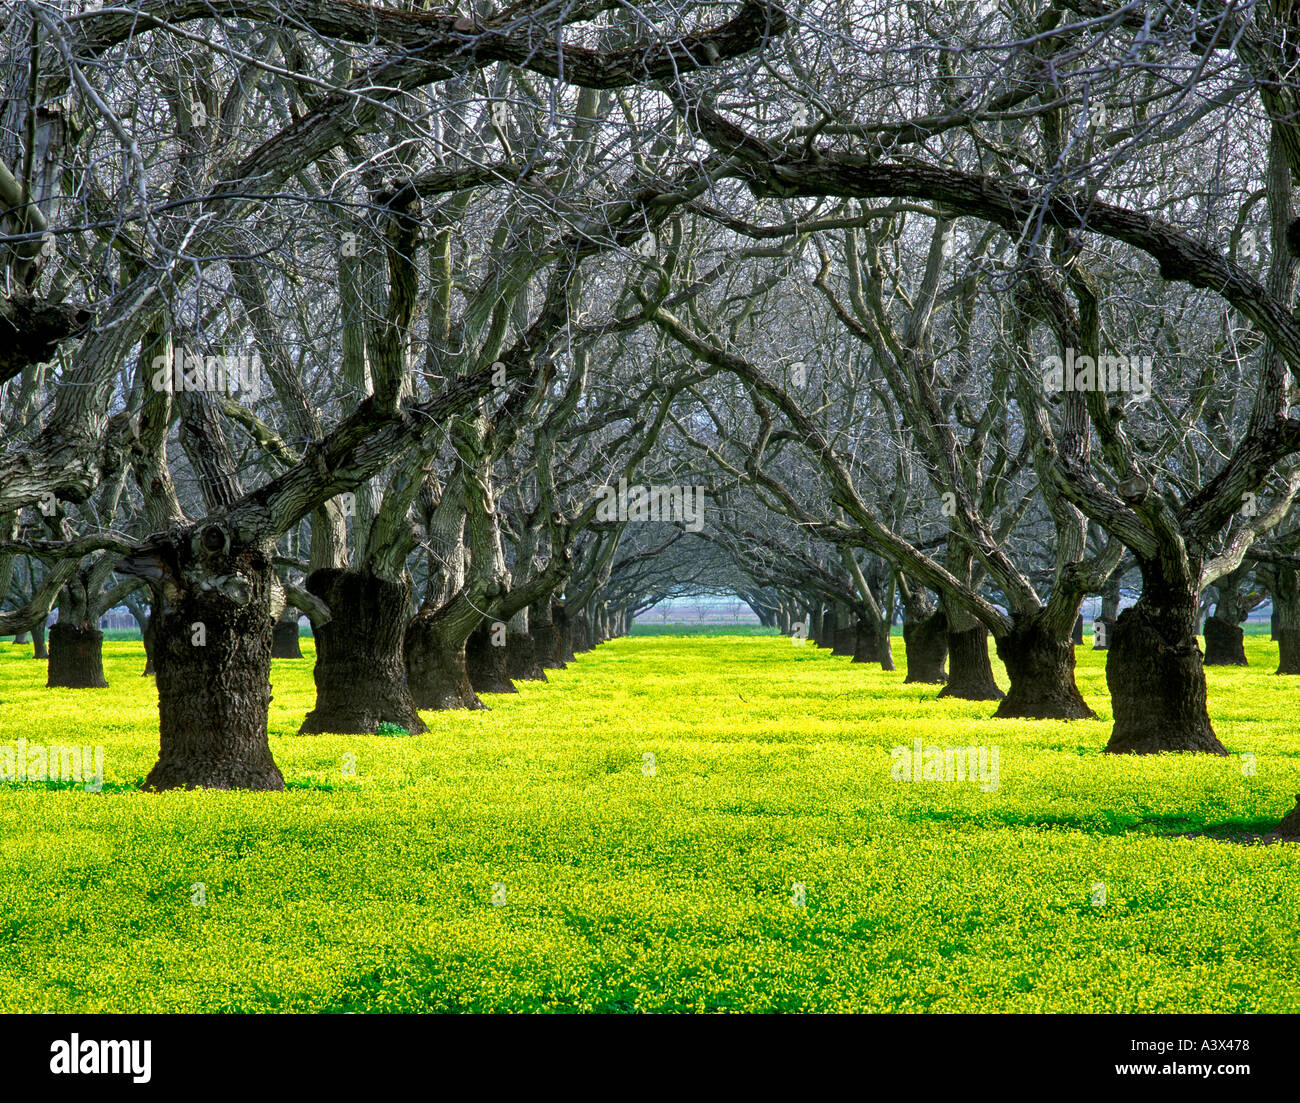 walnut tree branch stockfotos walnut tree branch bilder alamy. Black Bedroom Furniture Sets. Home Design Ideas